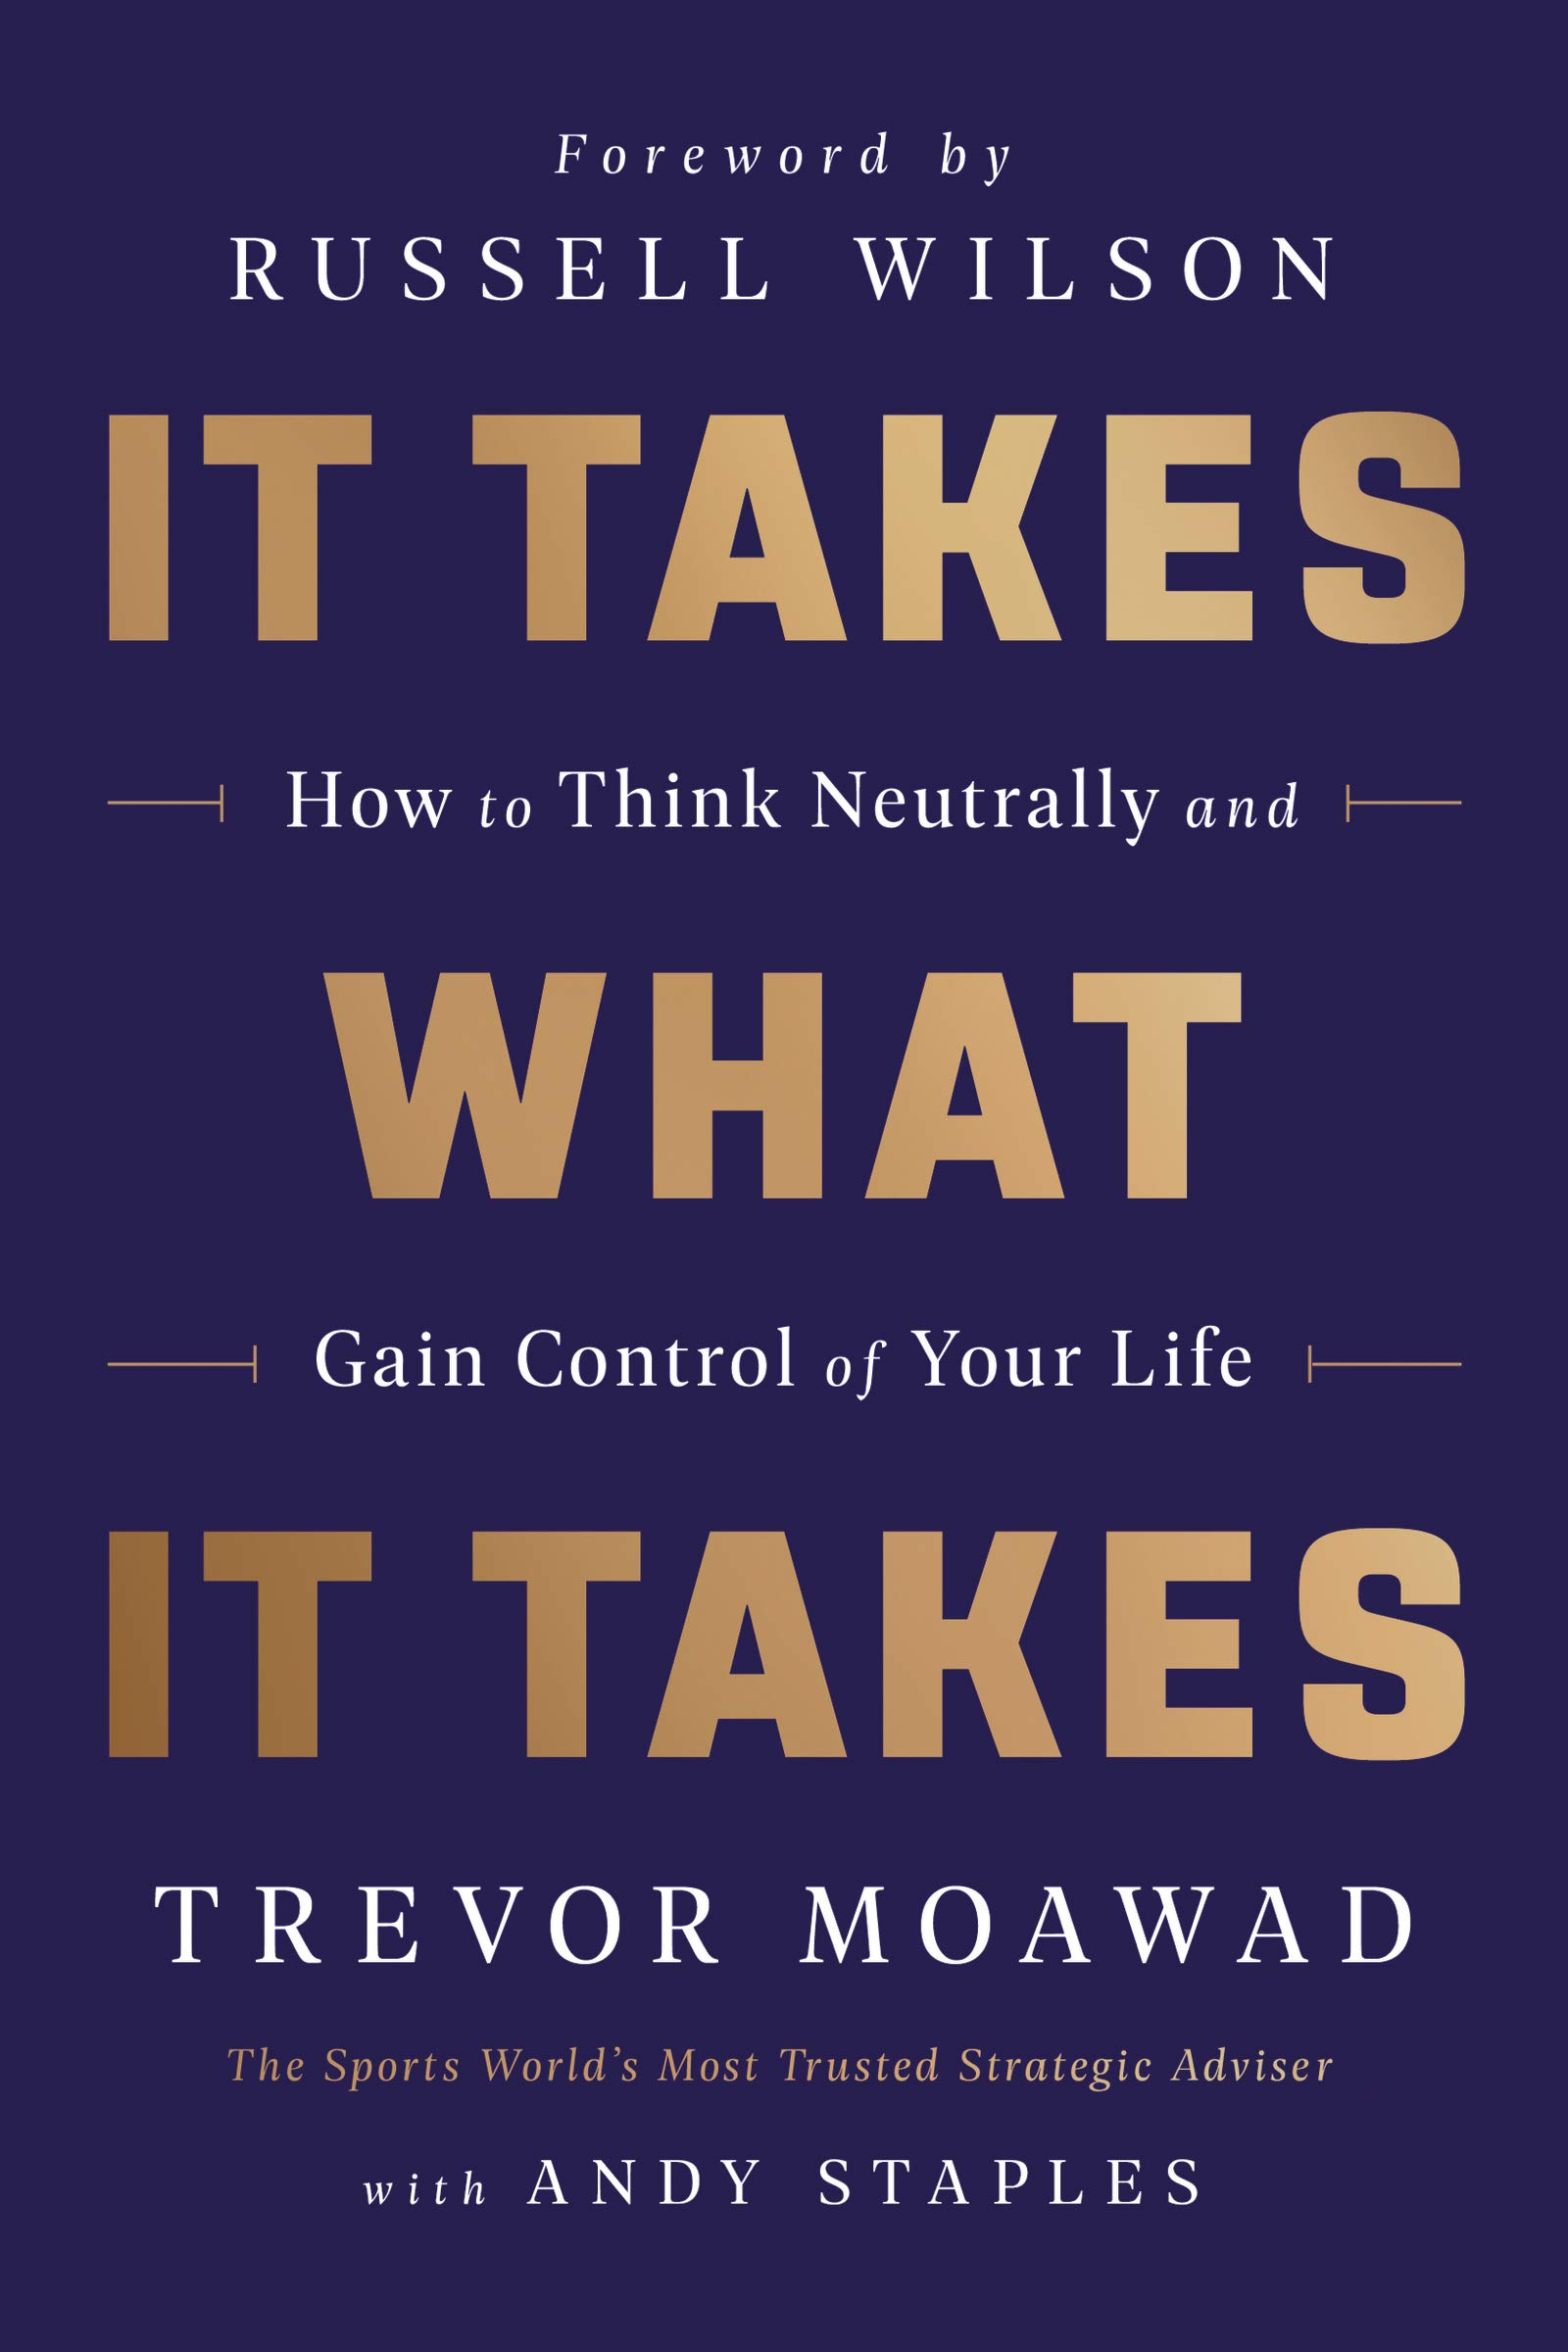 It Takes What It Takes: How to Think Neutrally and Gain Control of Your Life by HarperOne